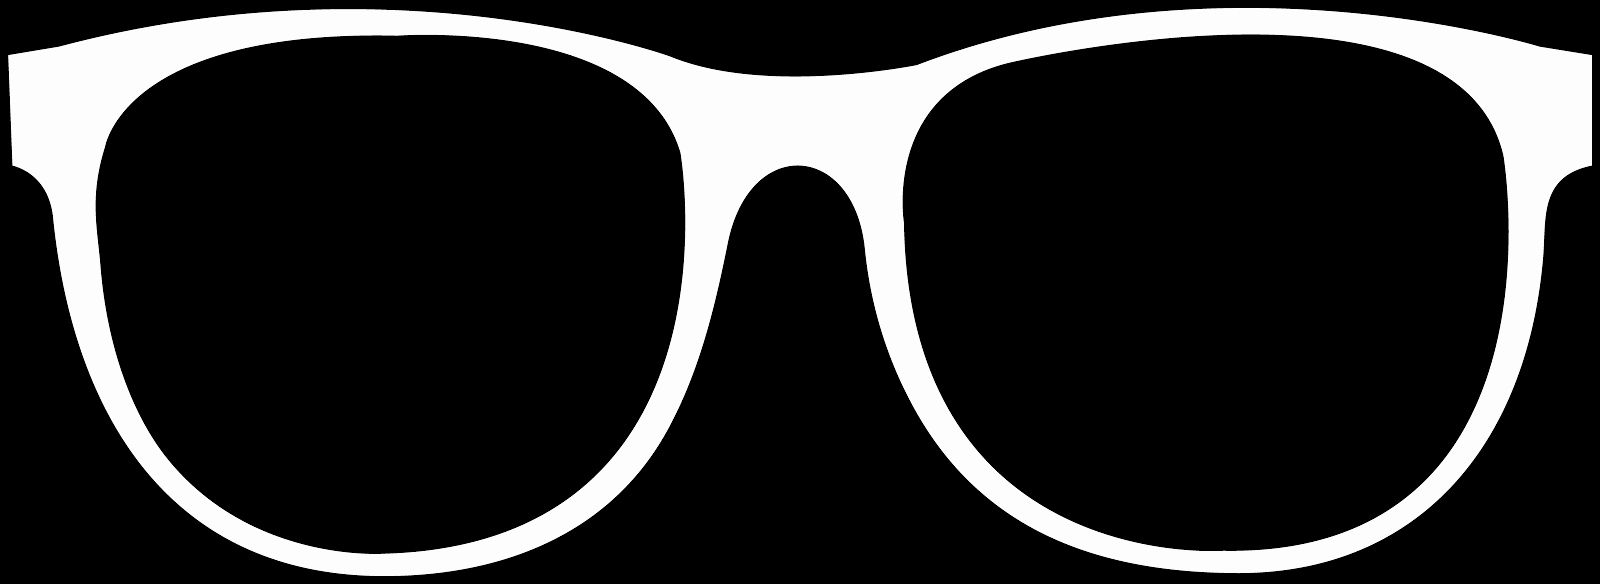 sun with sunglasses coloring page free coloring pages printable pictures to color kids with coloring sun sunglasses page